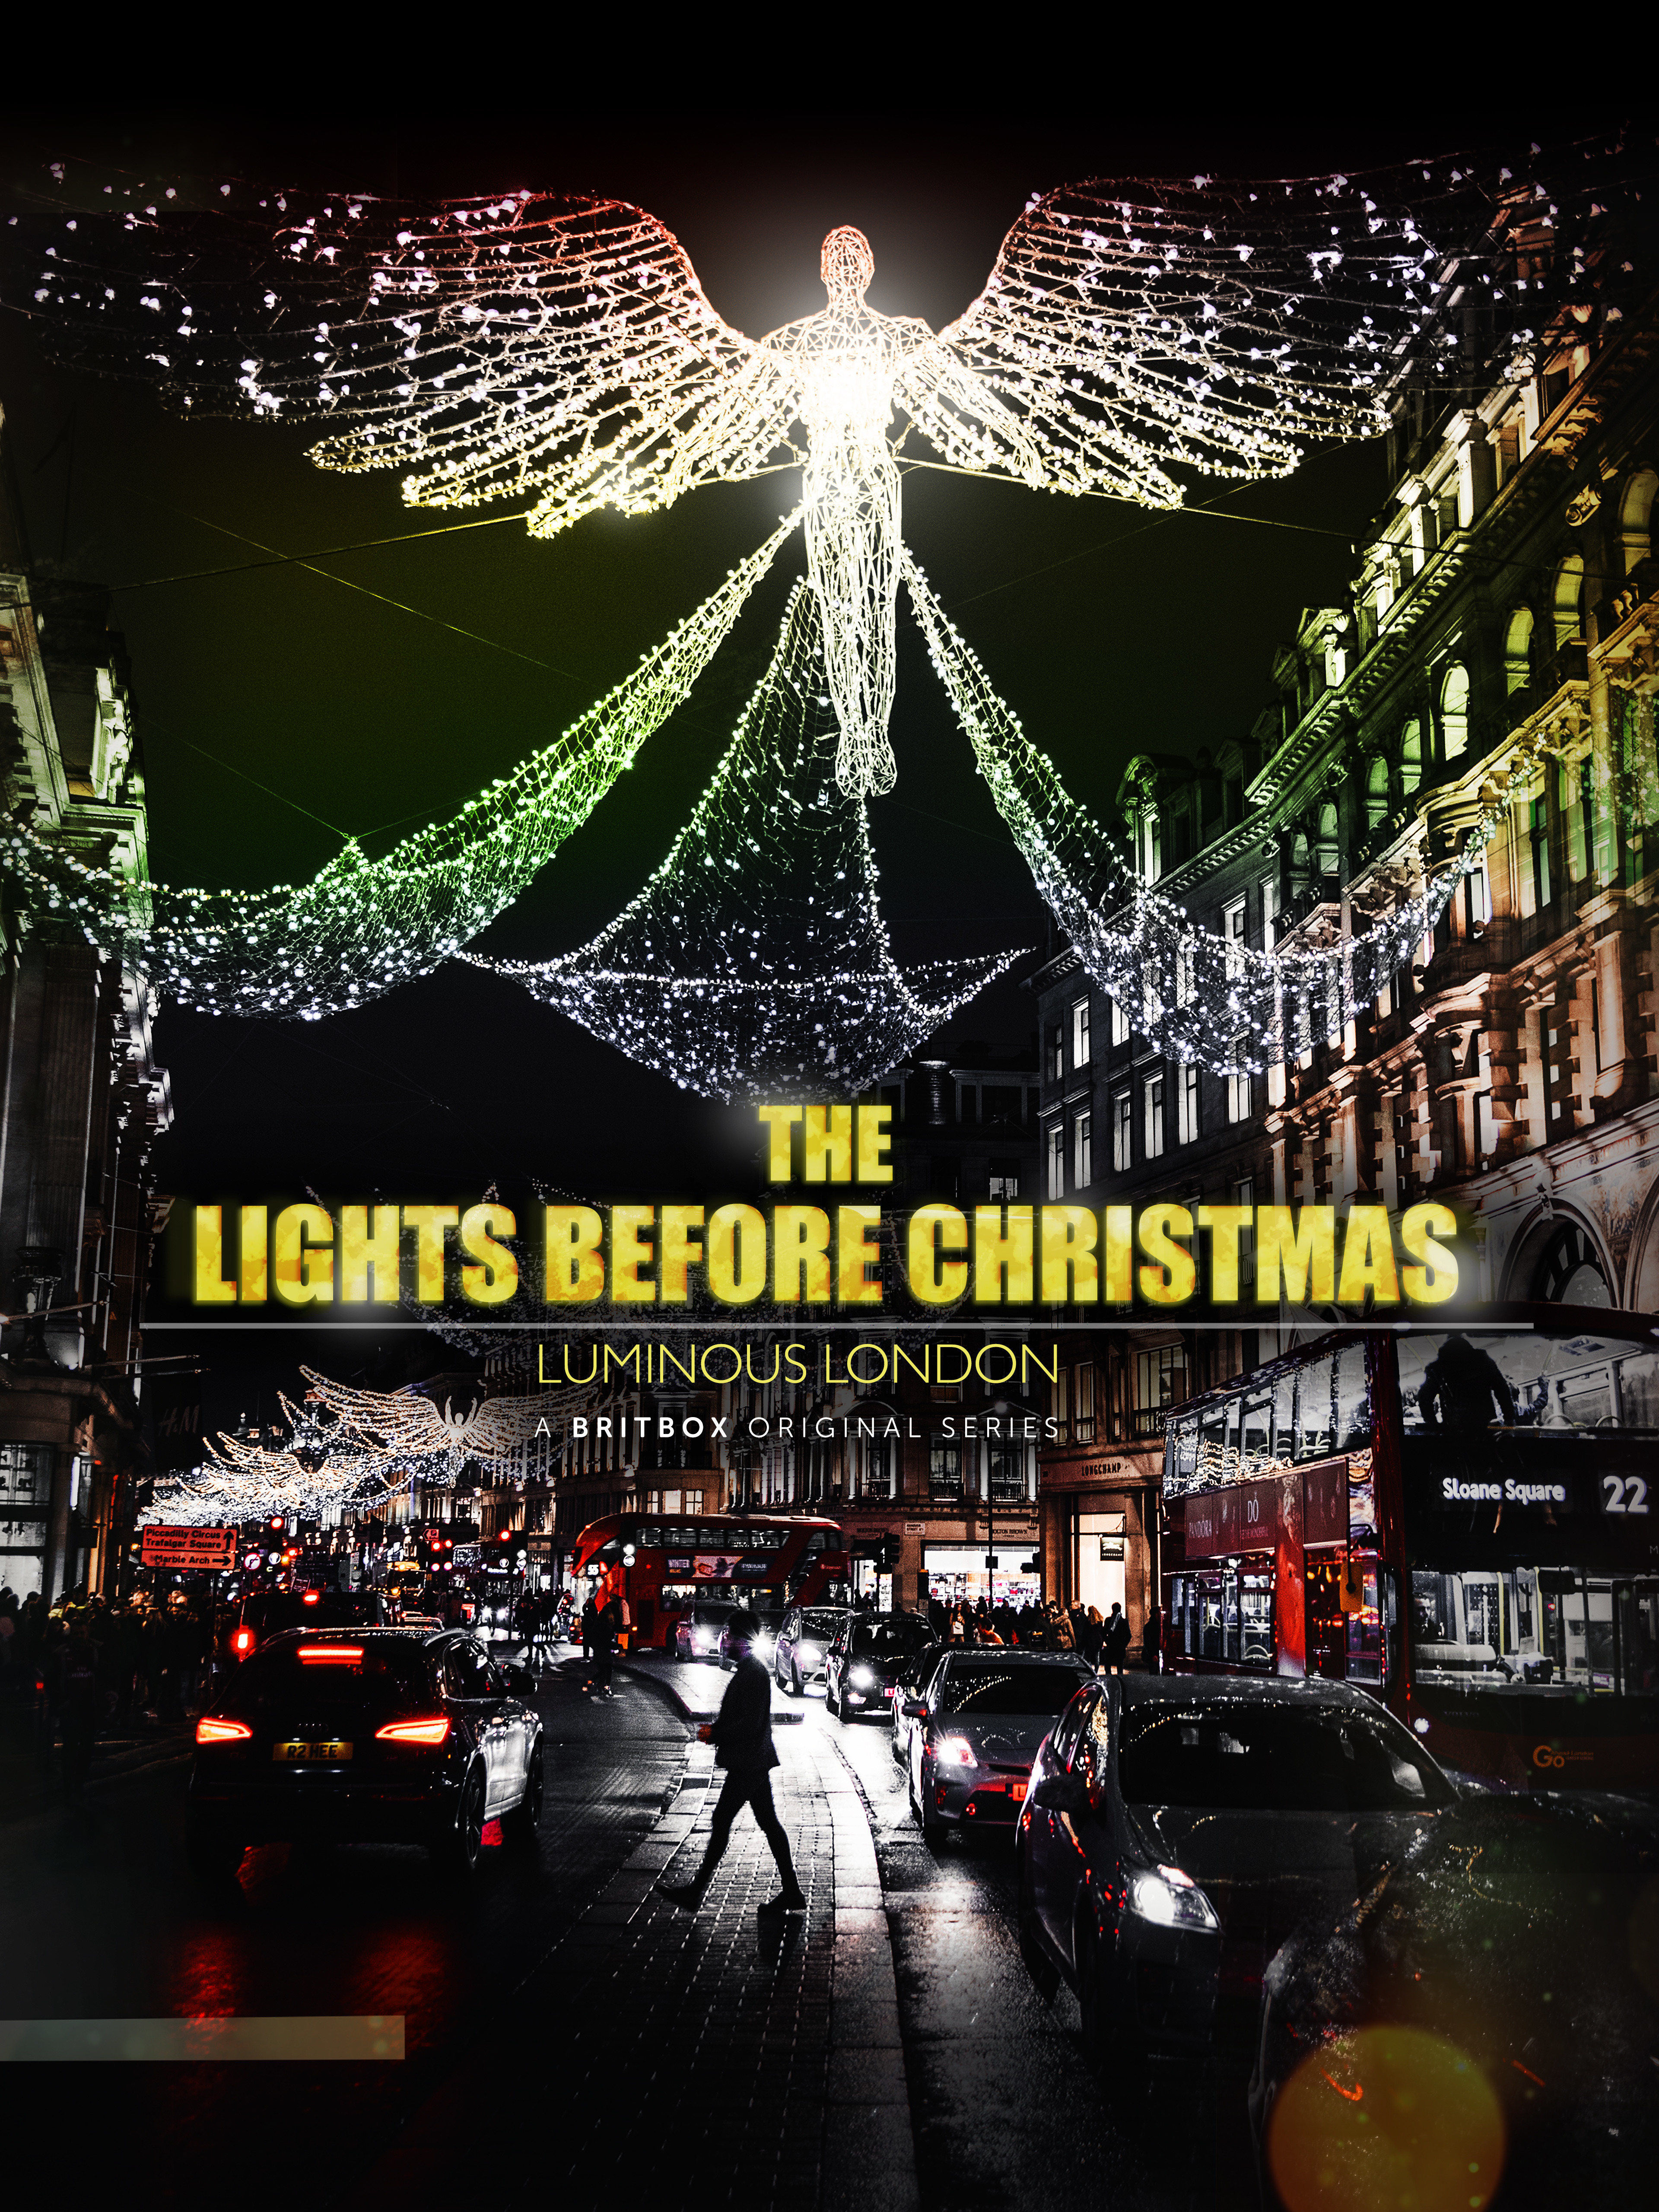 The Lights Before Christmas.Prime Video The Lights Before Christmas Luminous London